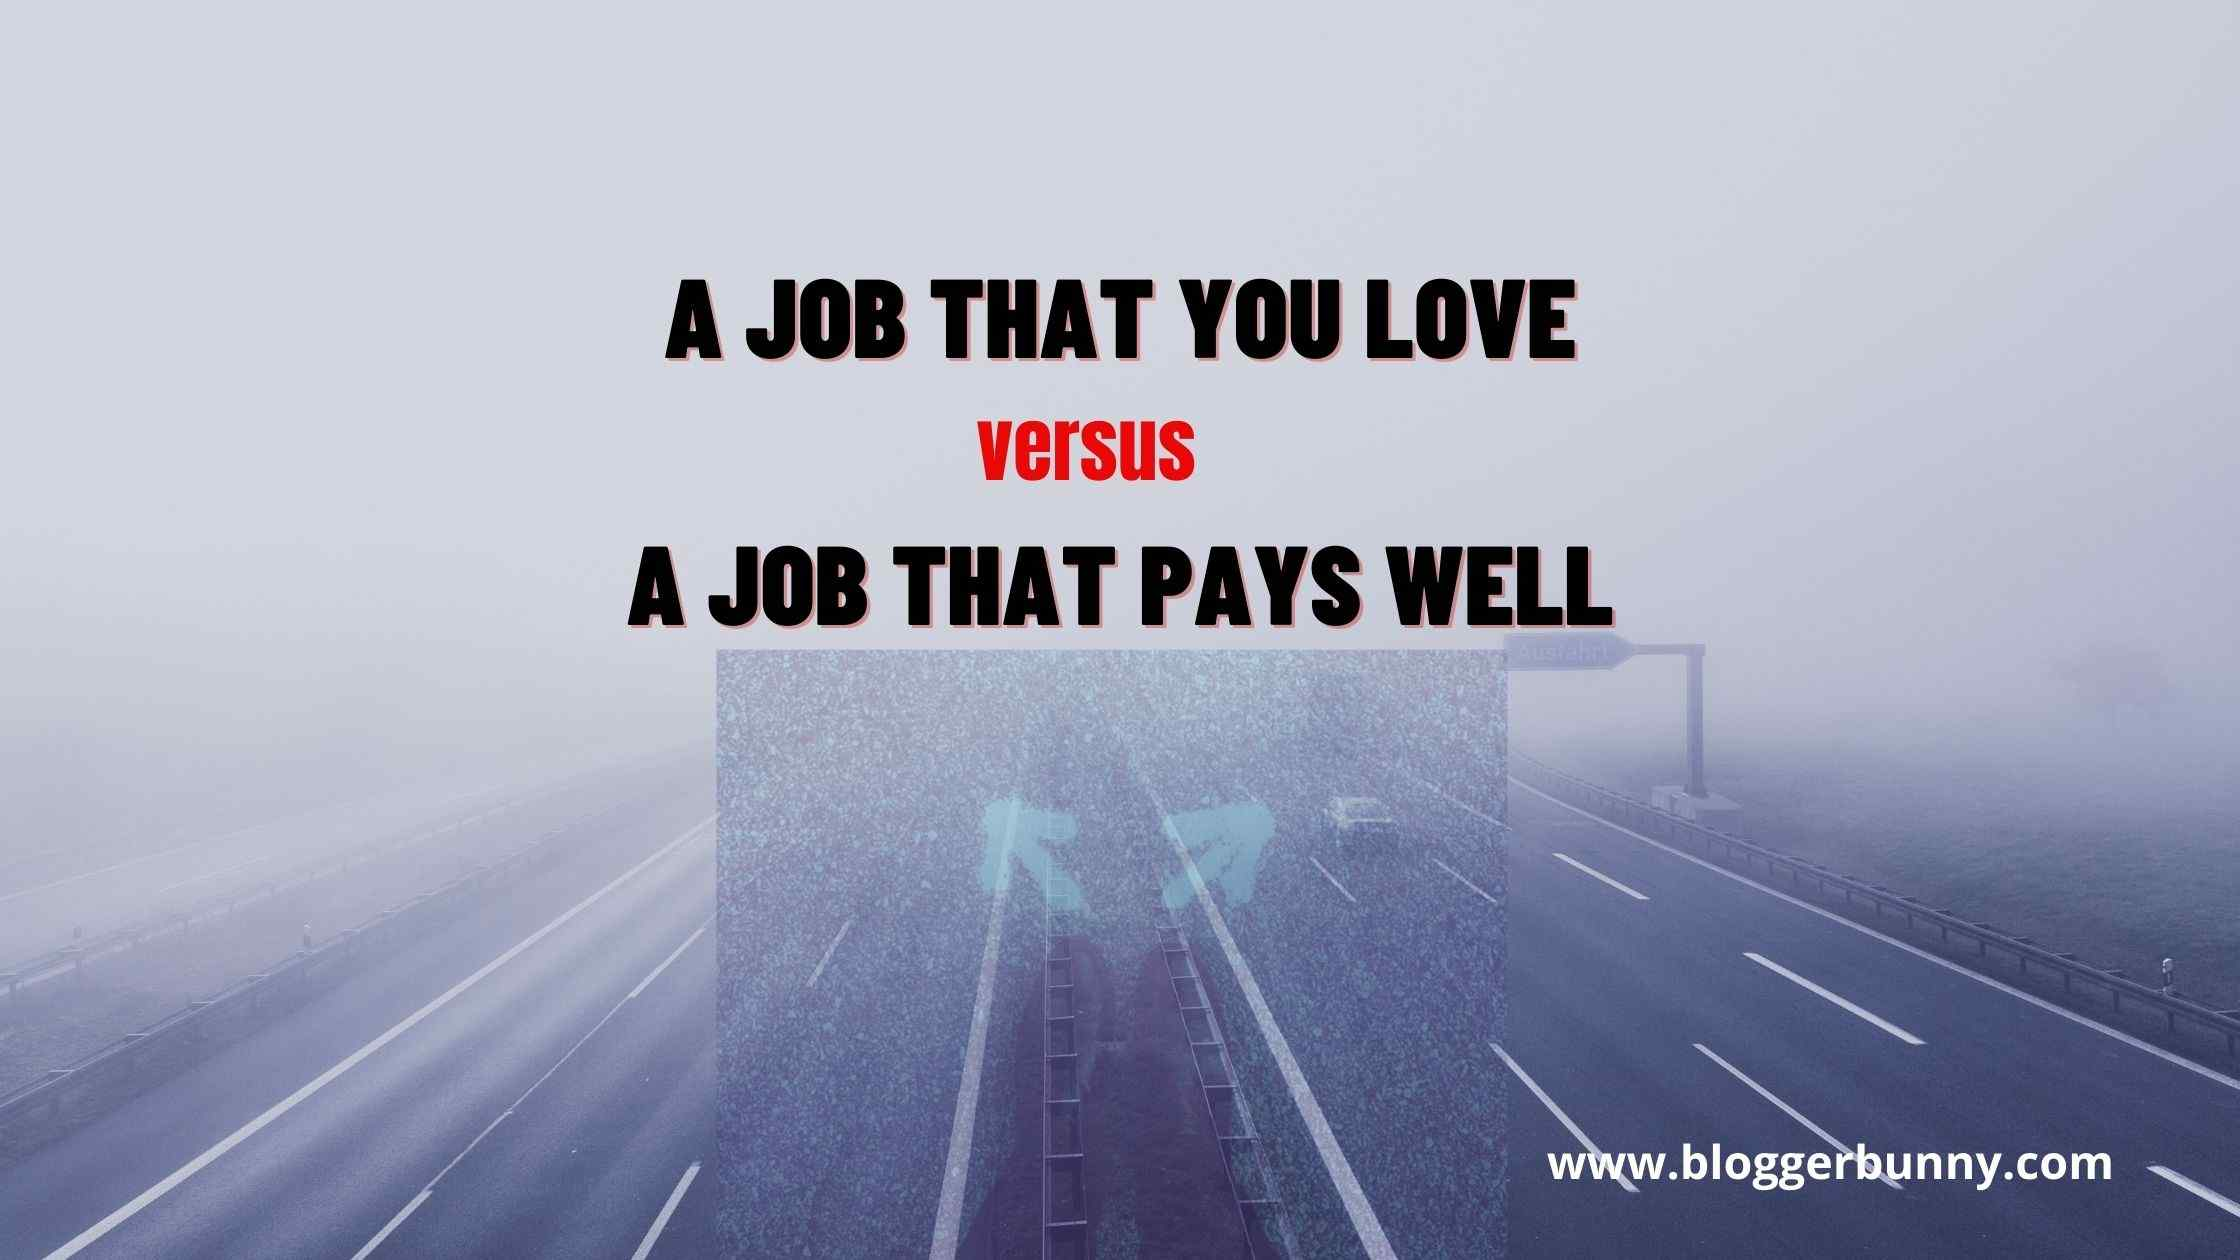 A Job That You Love versus A Job That Pays Well